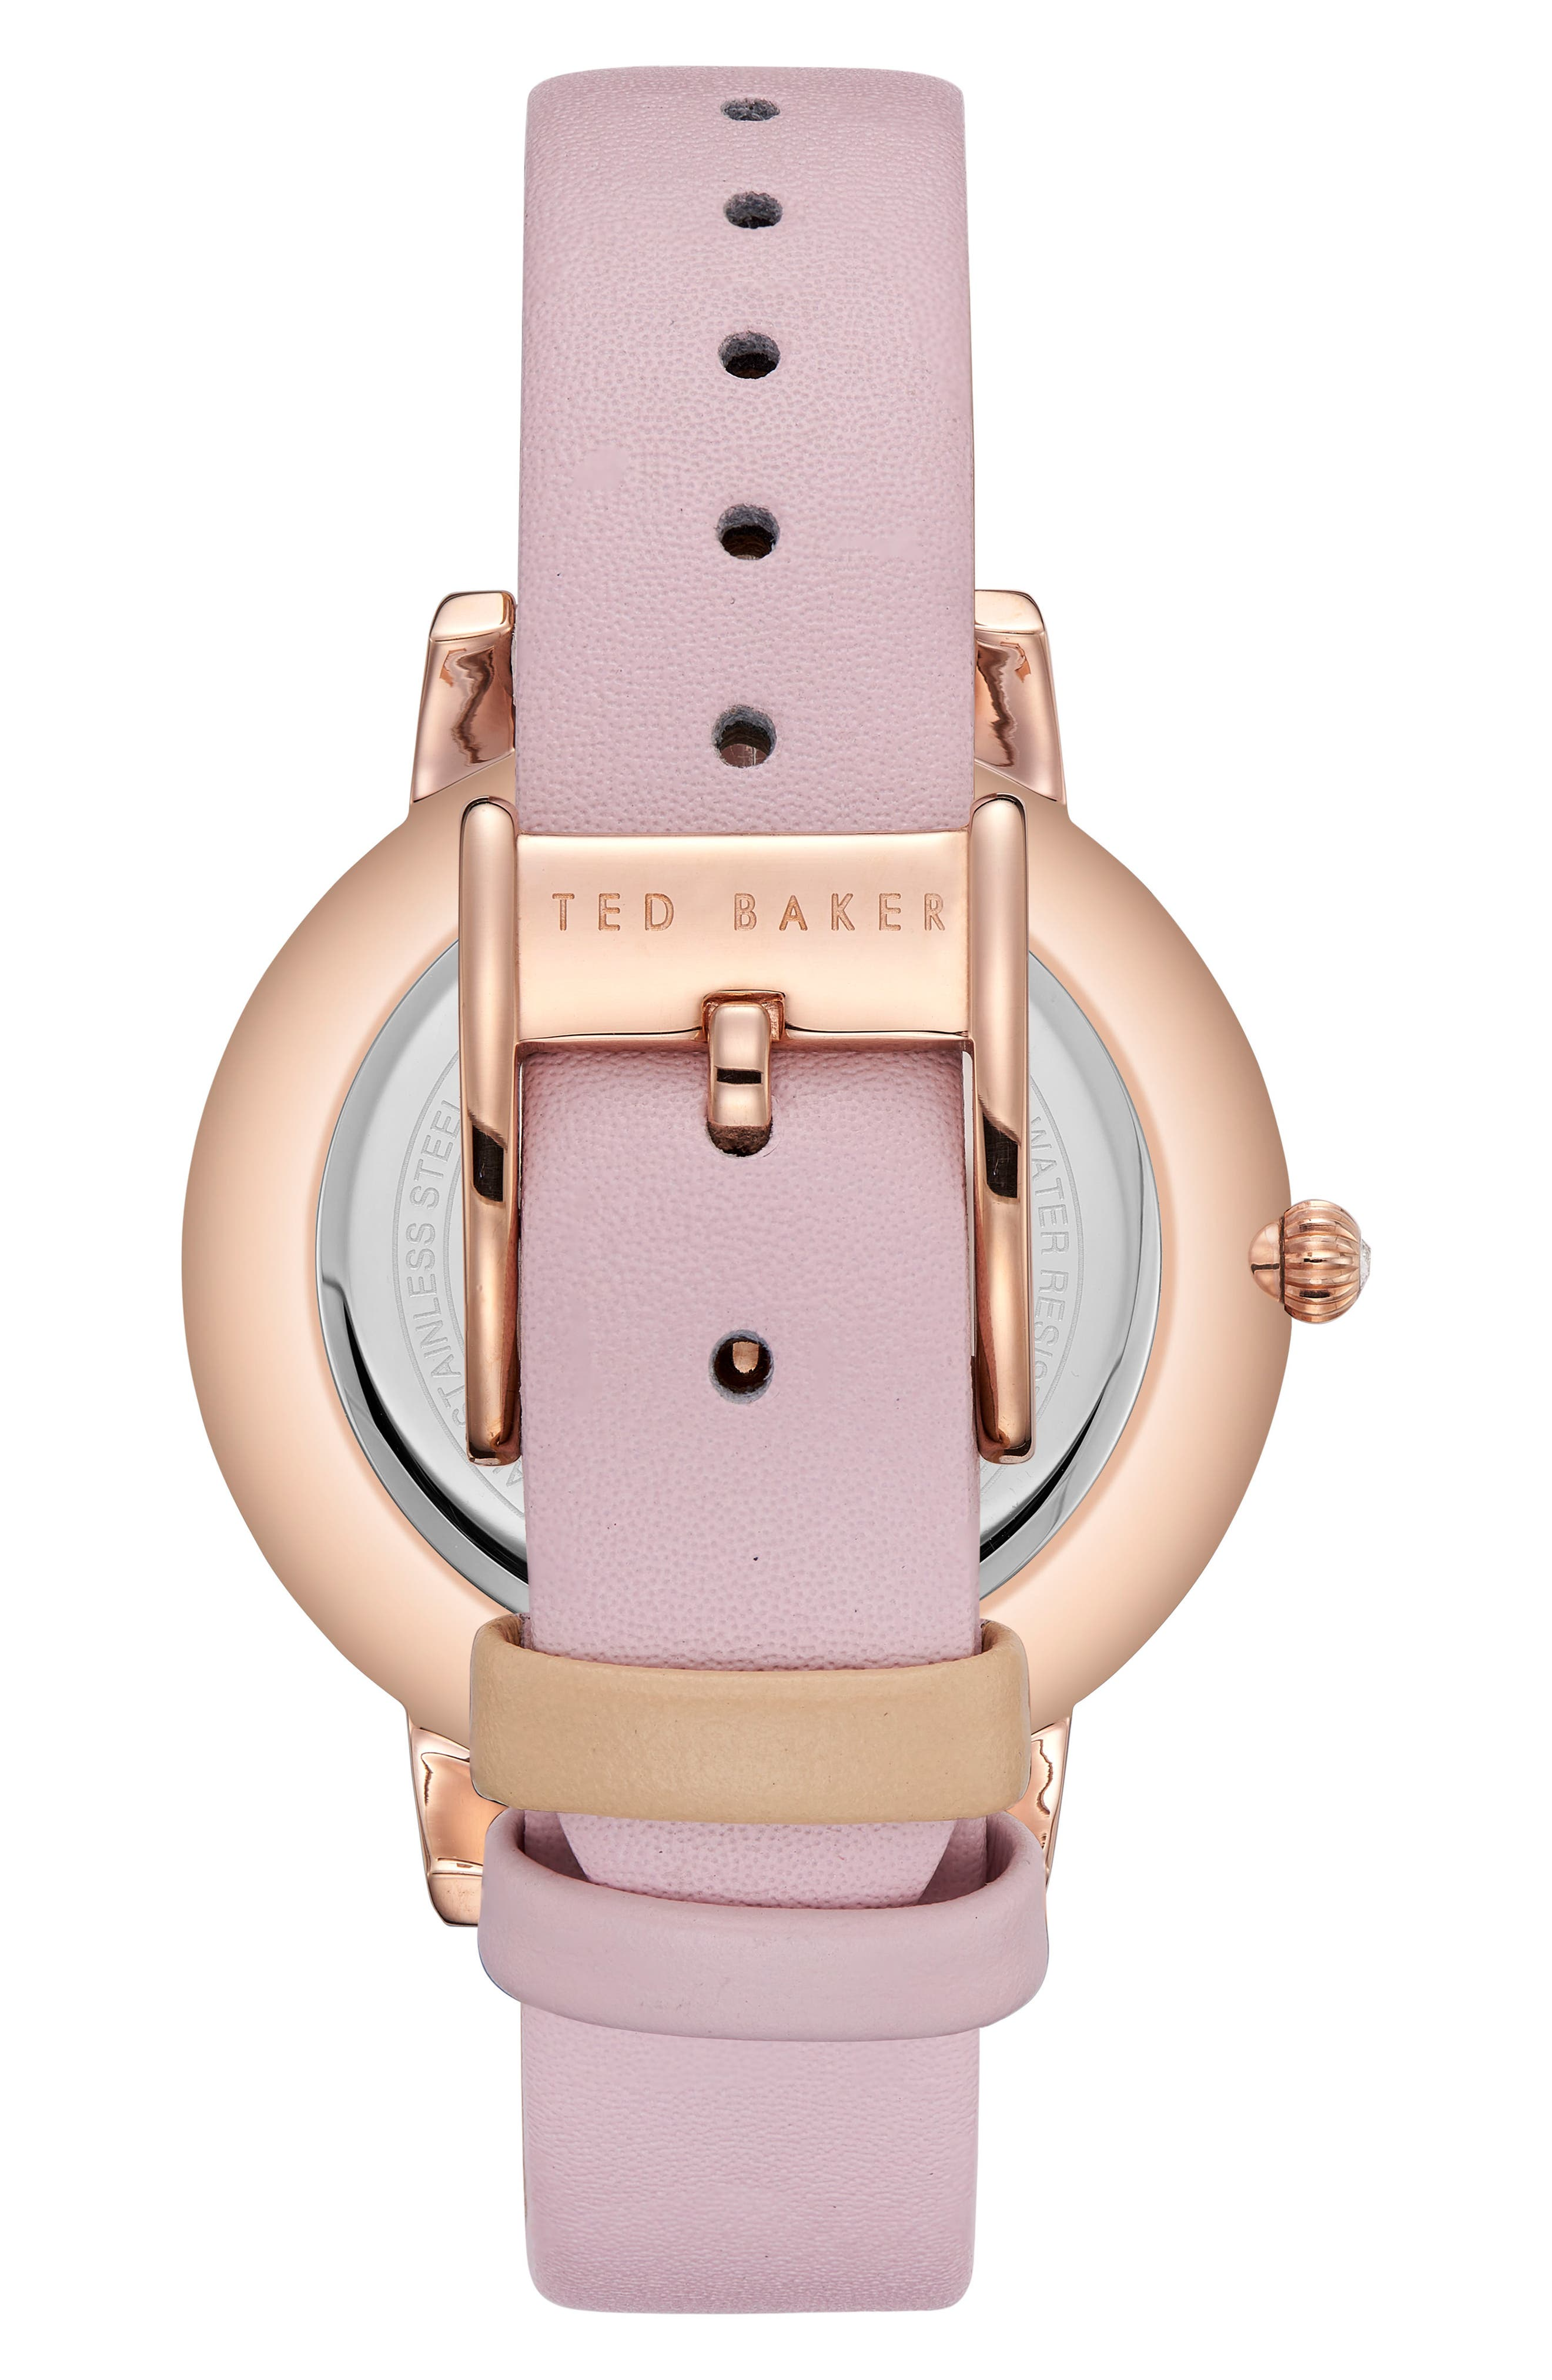 Olivia Leather Strap Watch,                             Alternate thumbnail 2, color,                             PINK/ WHITE/ ROSE GOLD